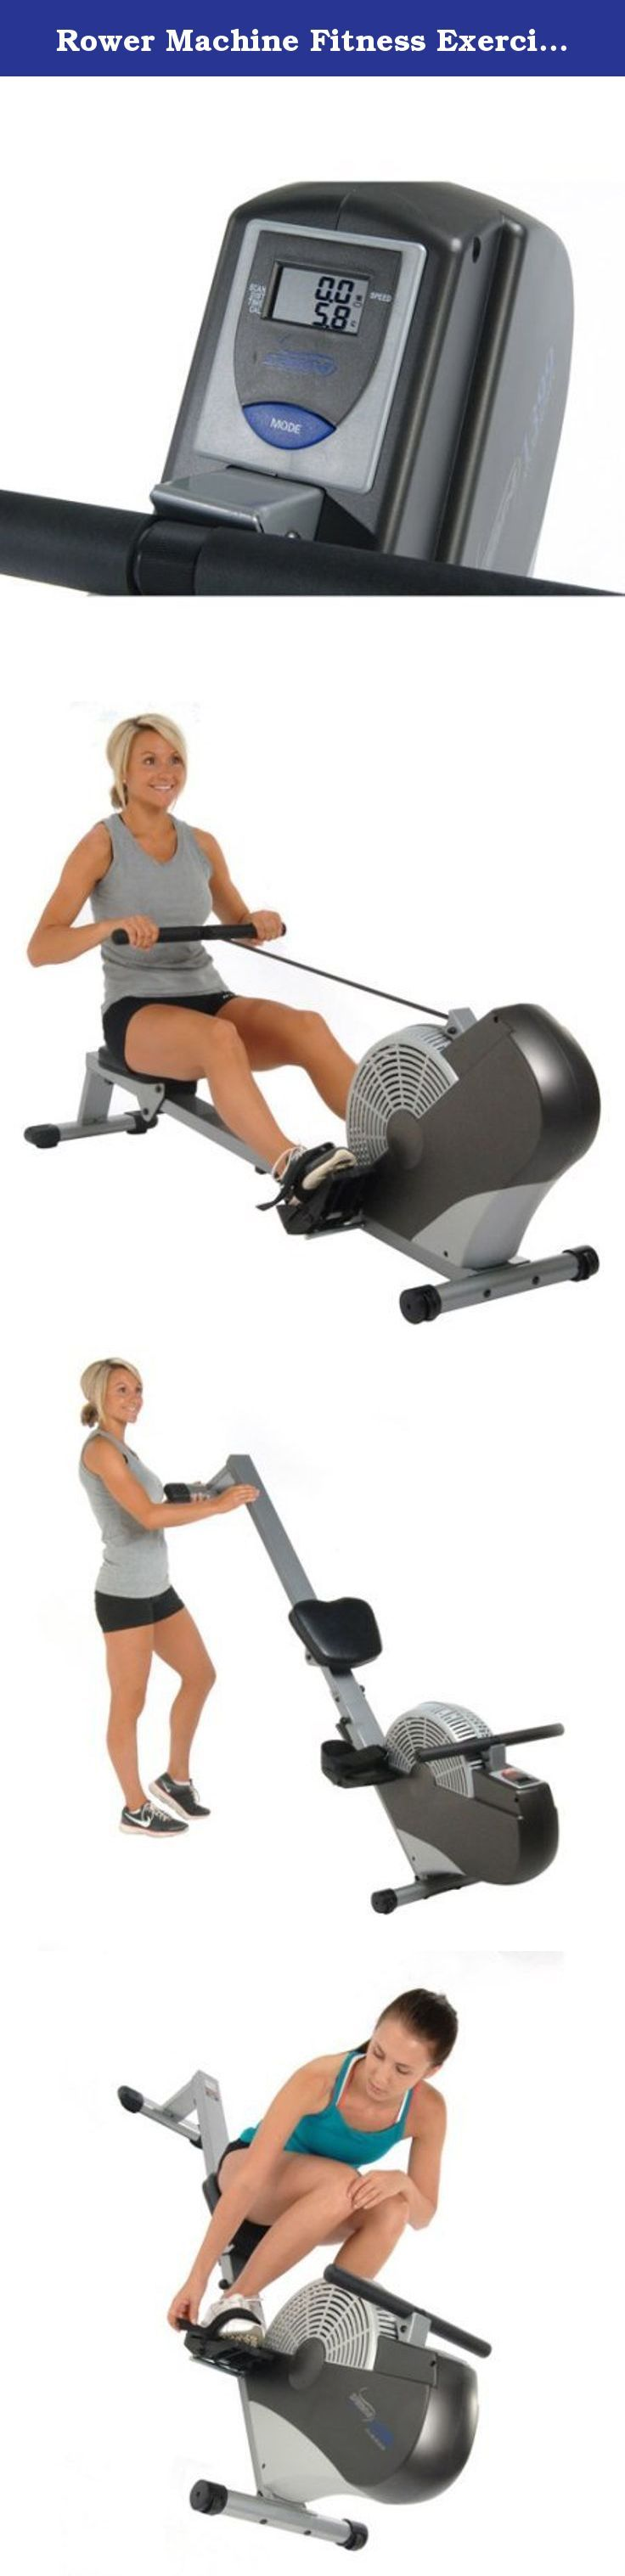 Rower Machine Fitness Exercise Cardio Workout Training Home Gym Equipment Body Glider Solid steel Construction Rower Machine 5 Levels Resistance Comfortable, Stitched Seat Foam Hand Grips Build Muscle. Efficient wind resistance for smooth rowing stroke Multi-function electronic performance monitor displays speed, distance time and calories burned The exercise rower has a comfortable, padded, upholstered seat Large footplates for any size user Adjustable nylon foot straps Over-sized seat…